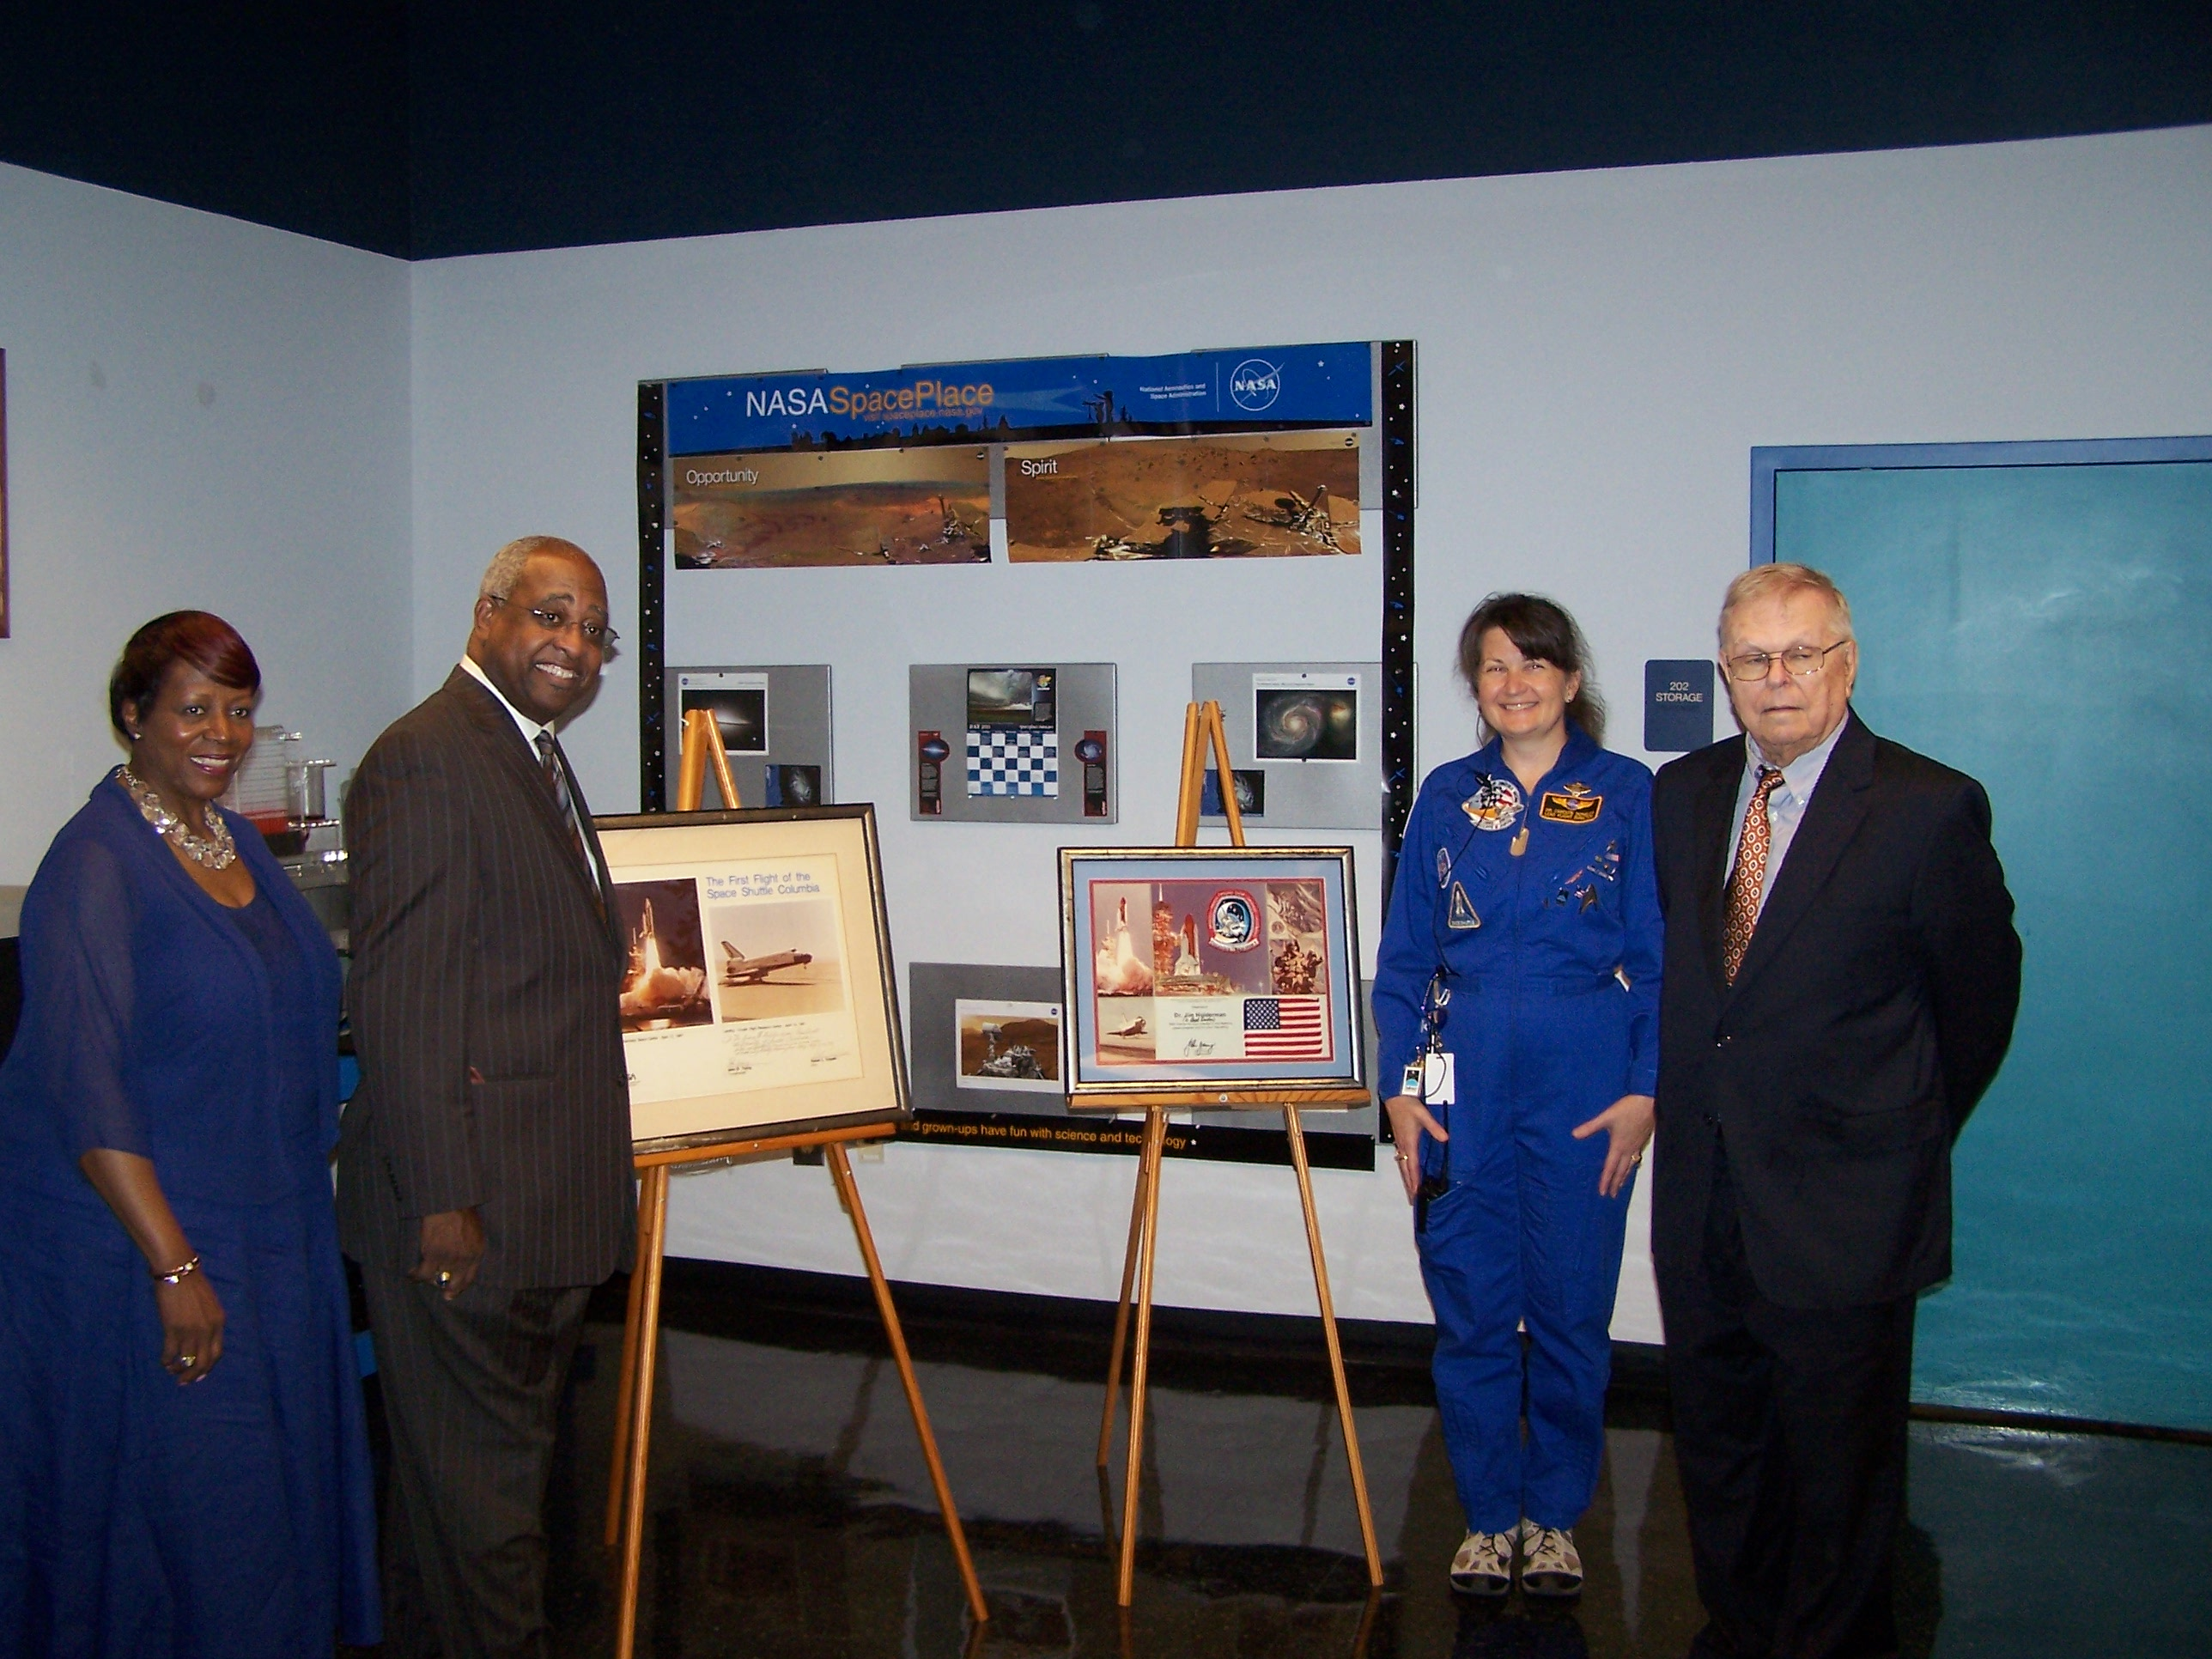 Former Usc President James B Holderman Donates Space Memorabilia To